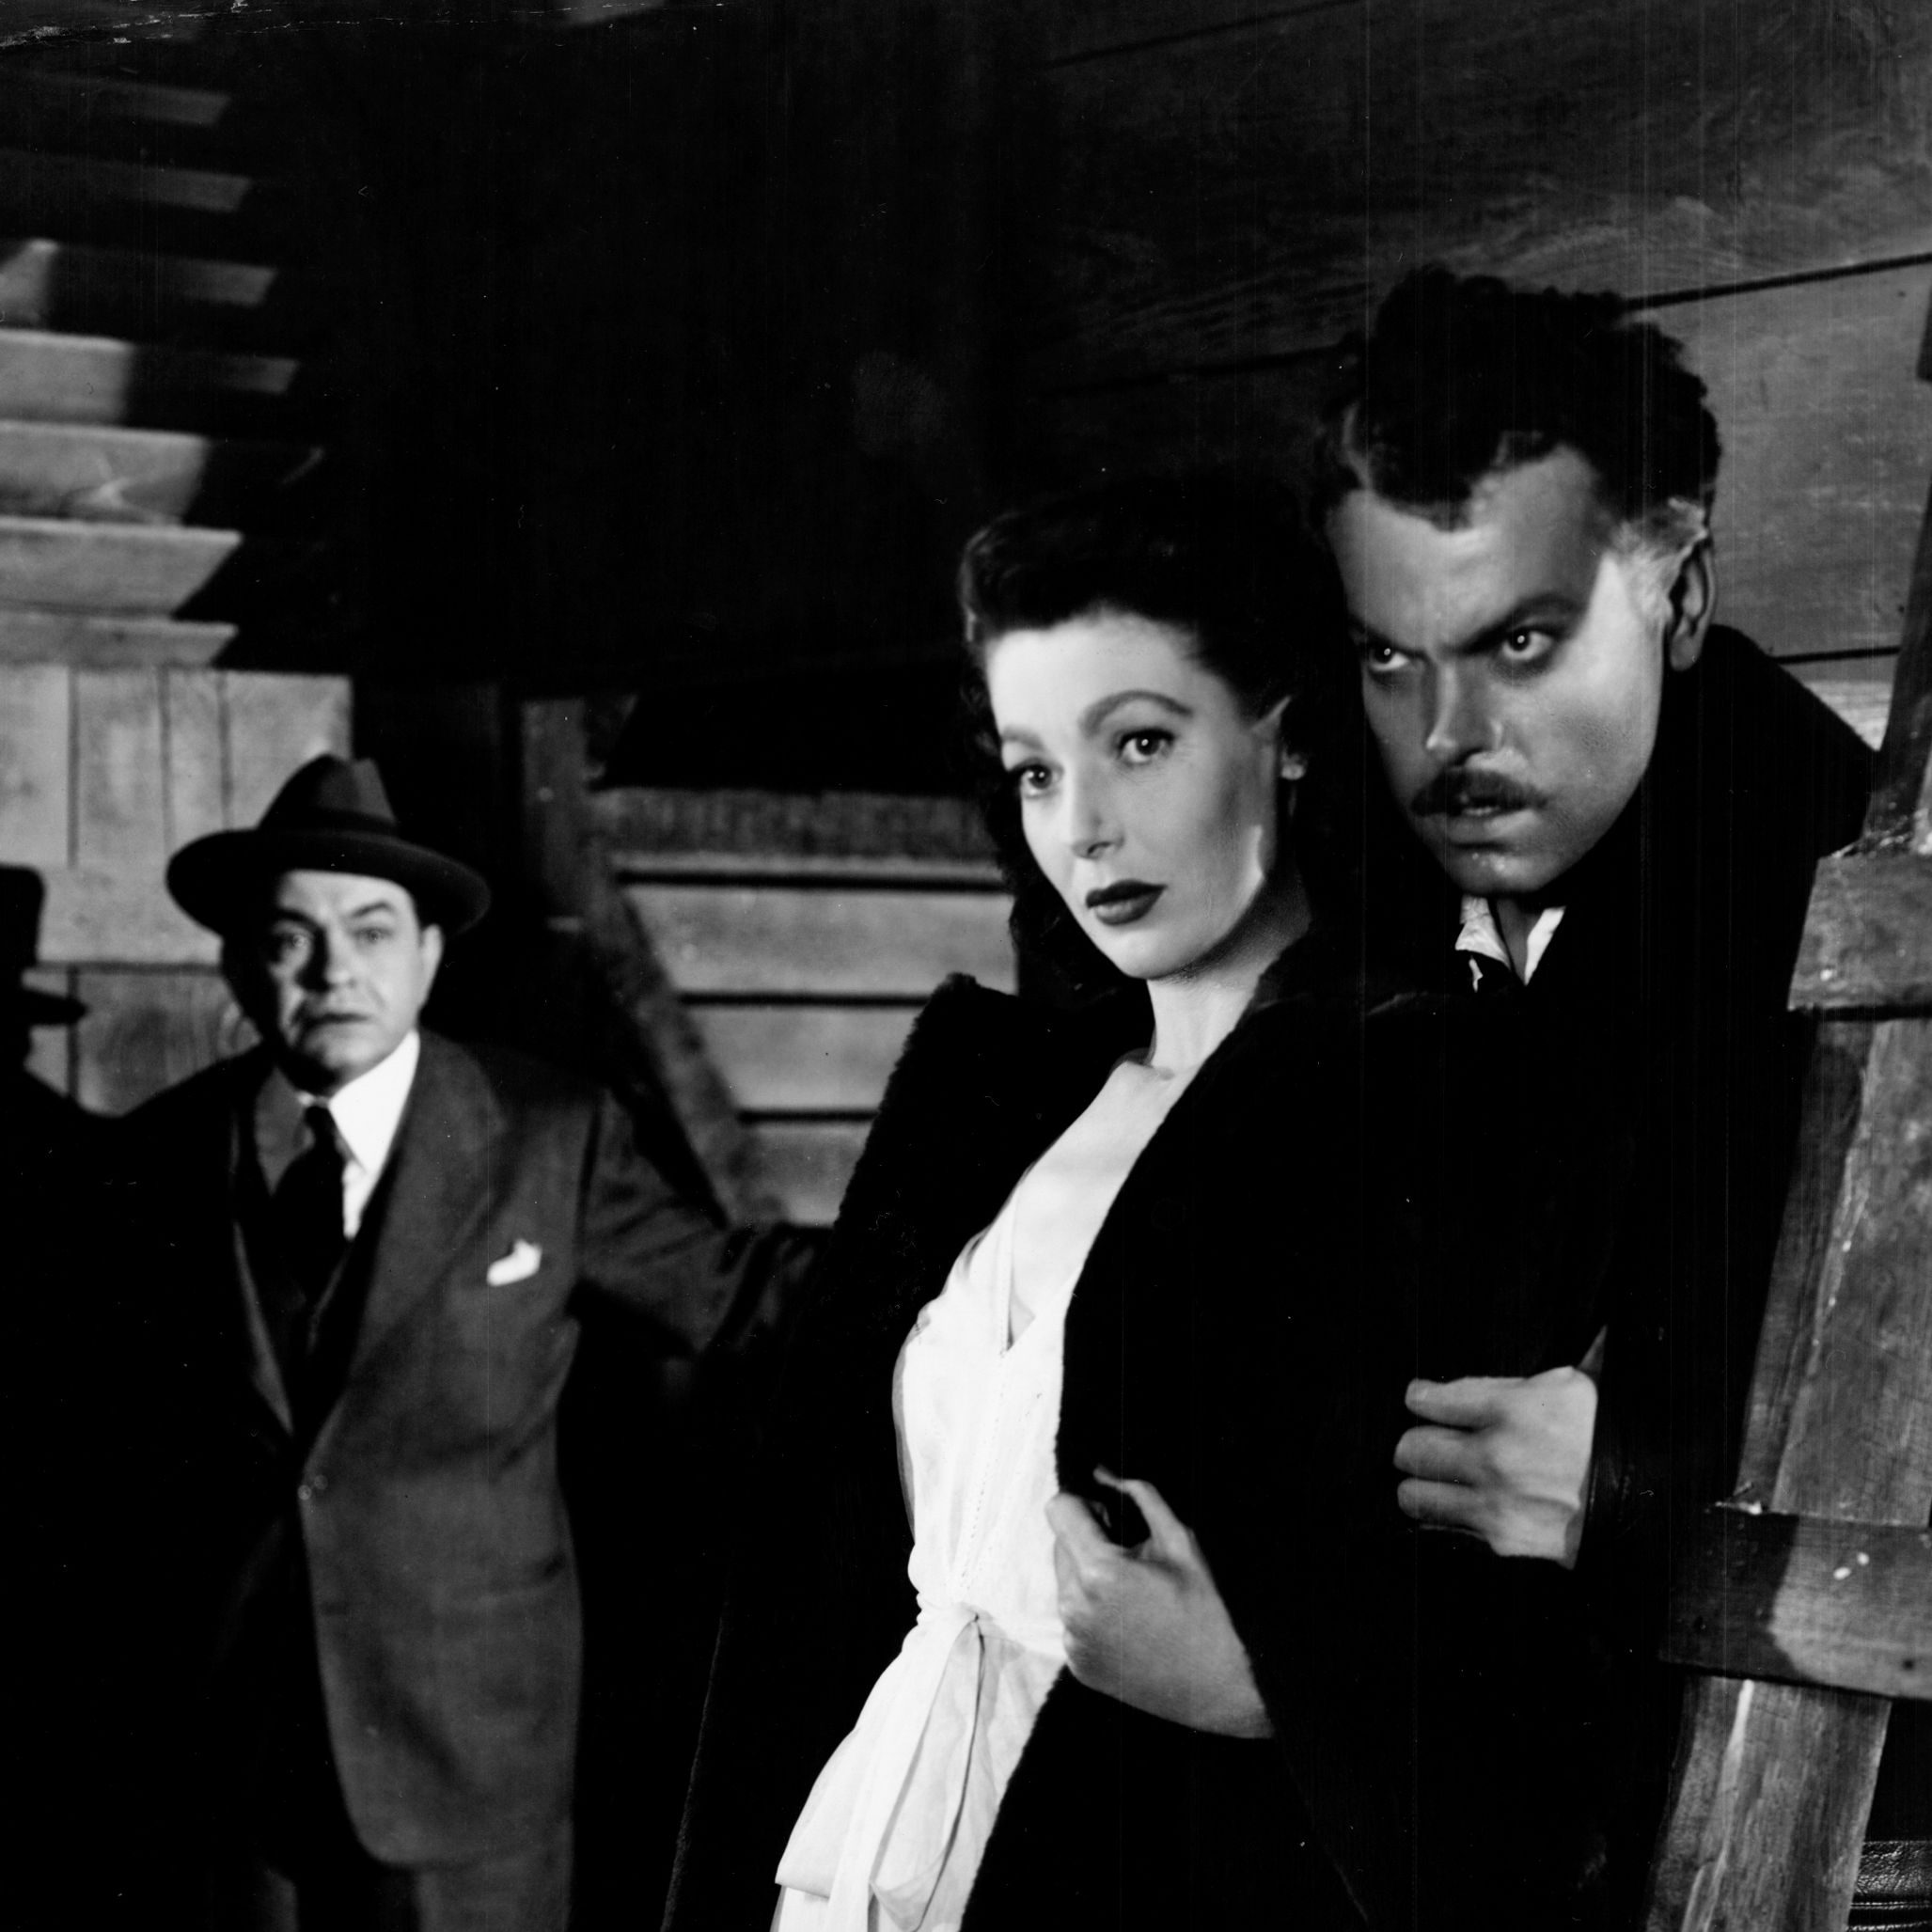 The Stranger (1946) Orson Welles directs and stars in this post-war thriller about a UN war crimes investigator who hunts down a former Nazi (Welles), who has settled in an unassuming small town in Connecticut.